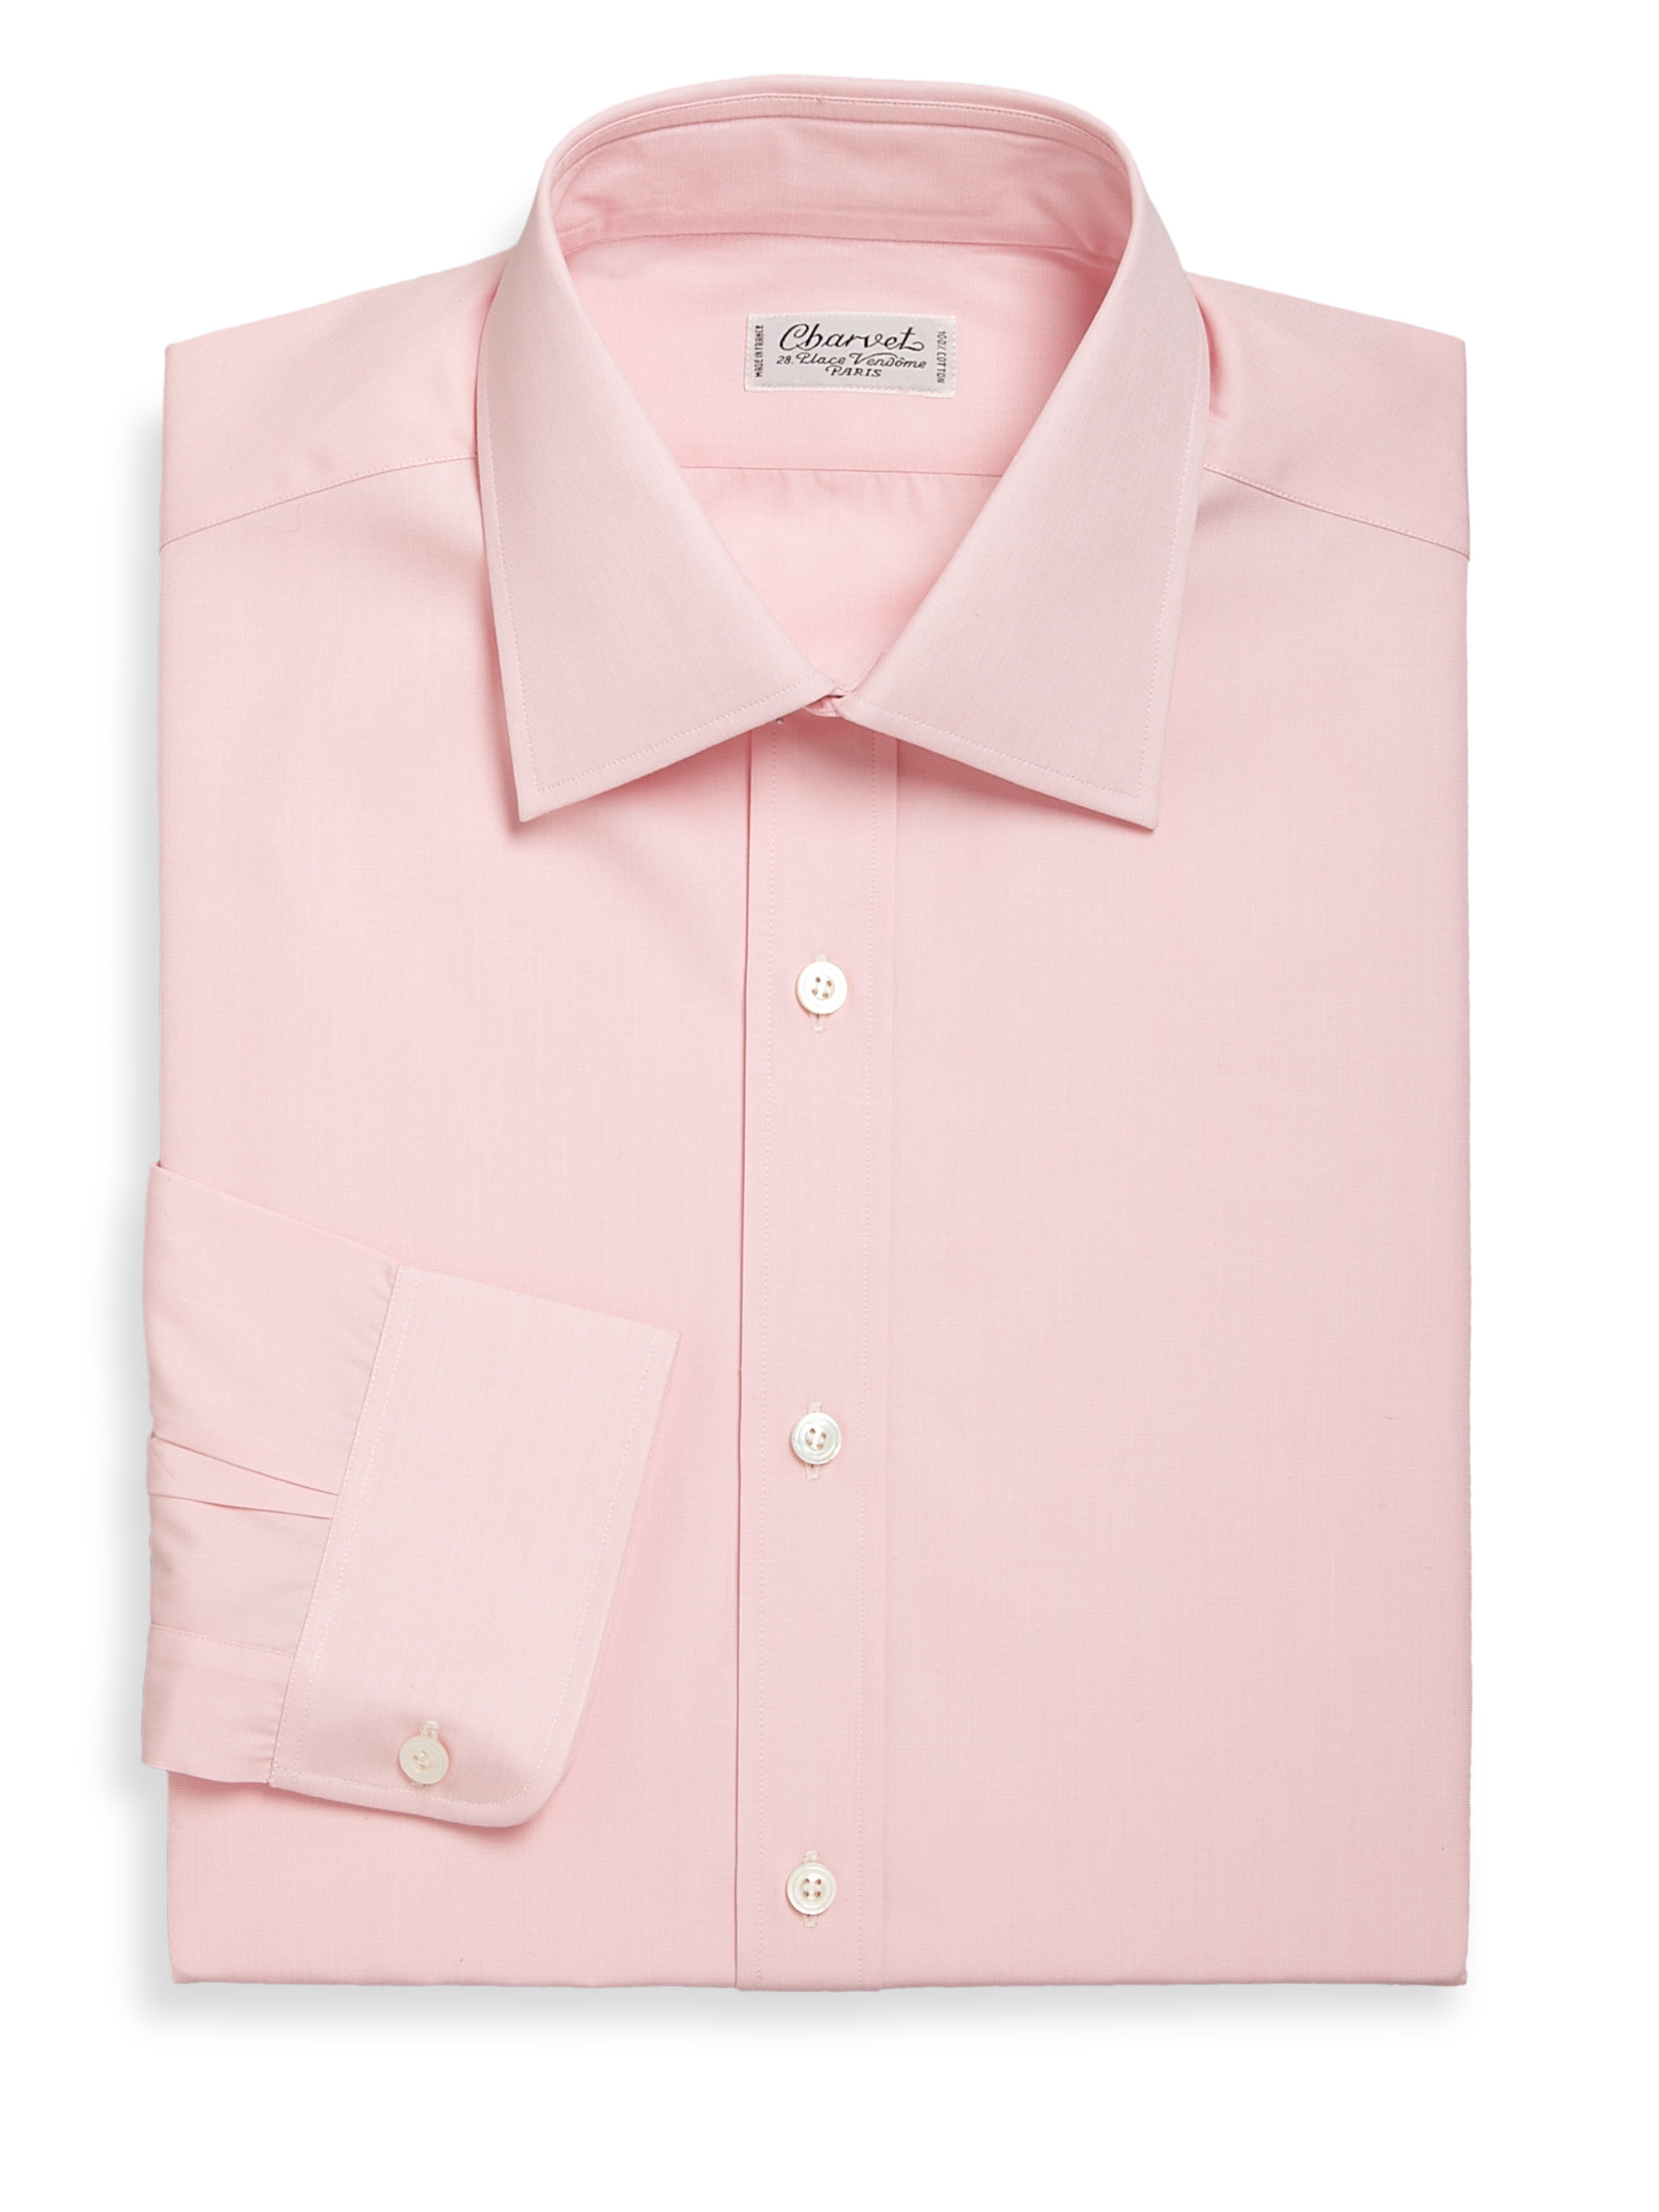 Charvet Solid Cotton Dress Shirt In Pink For Men Lyst